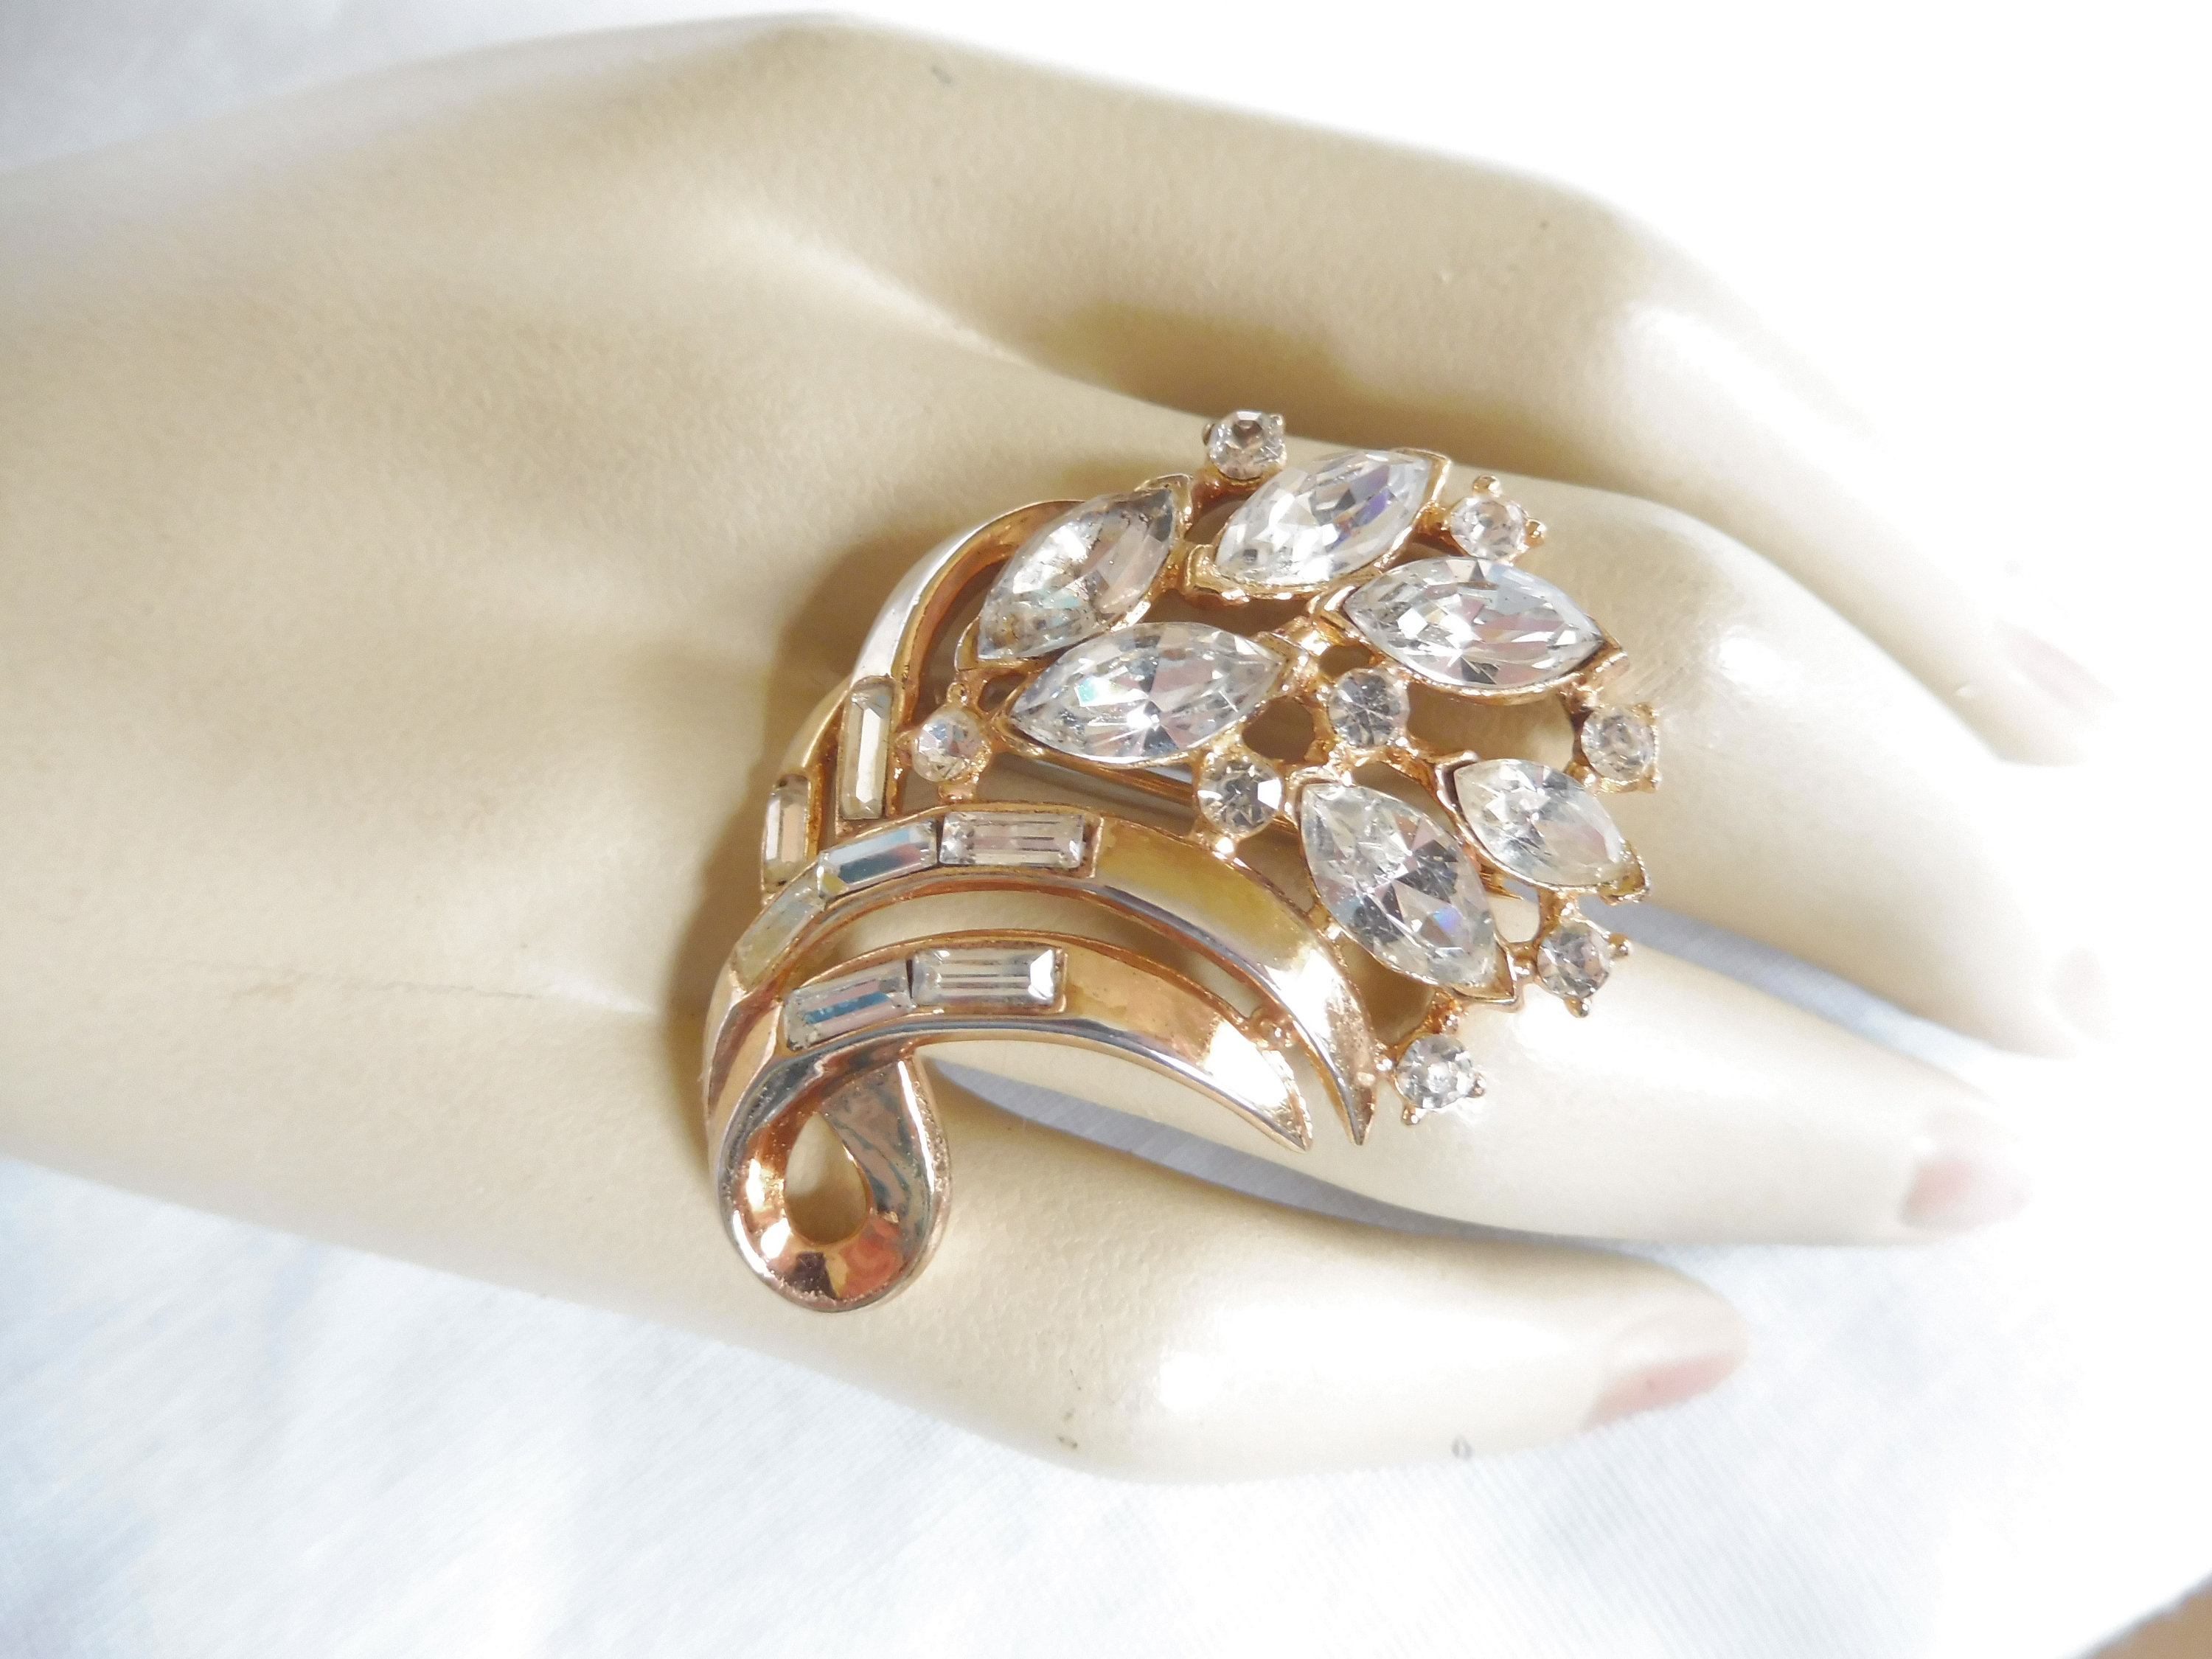 Vintage Crown Trifari Sparkling Clear Marquise Rhinestone Spray Brooch Pin Intended For 2018 Clear Sparkling Crown Rings (Gallery 16 of 25)